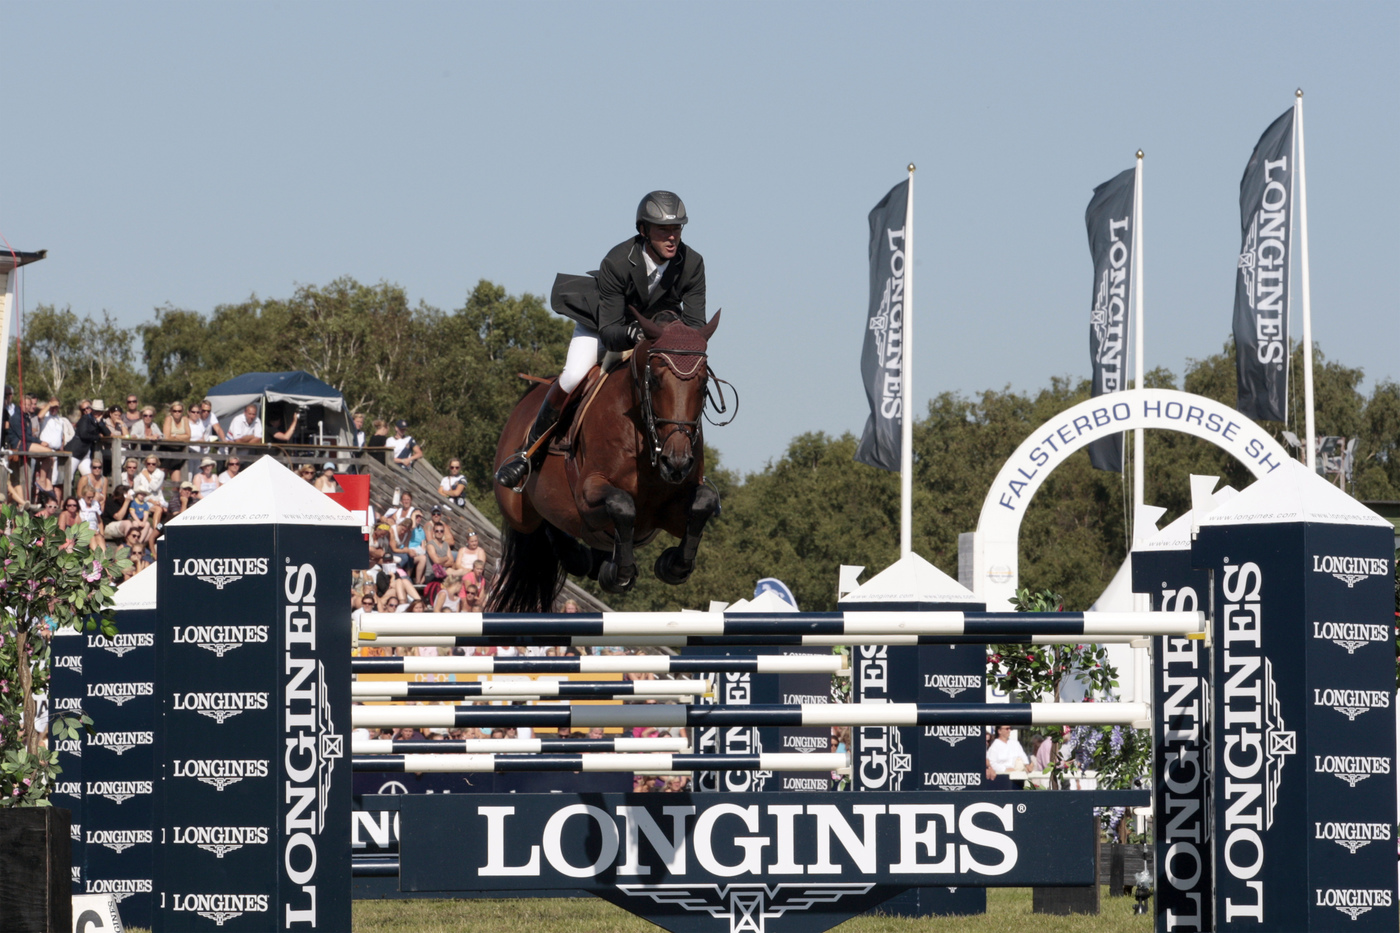 Longines Show Jumping Event: Falsterbo Horse Show 2011 1